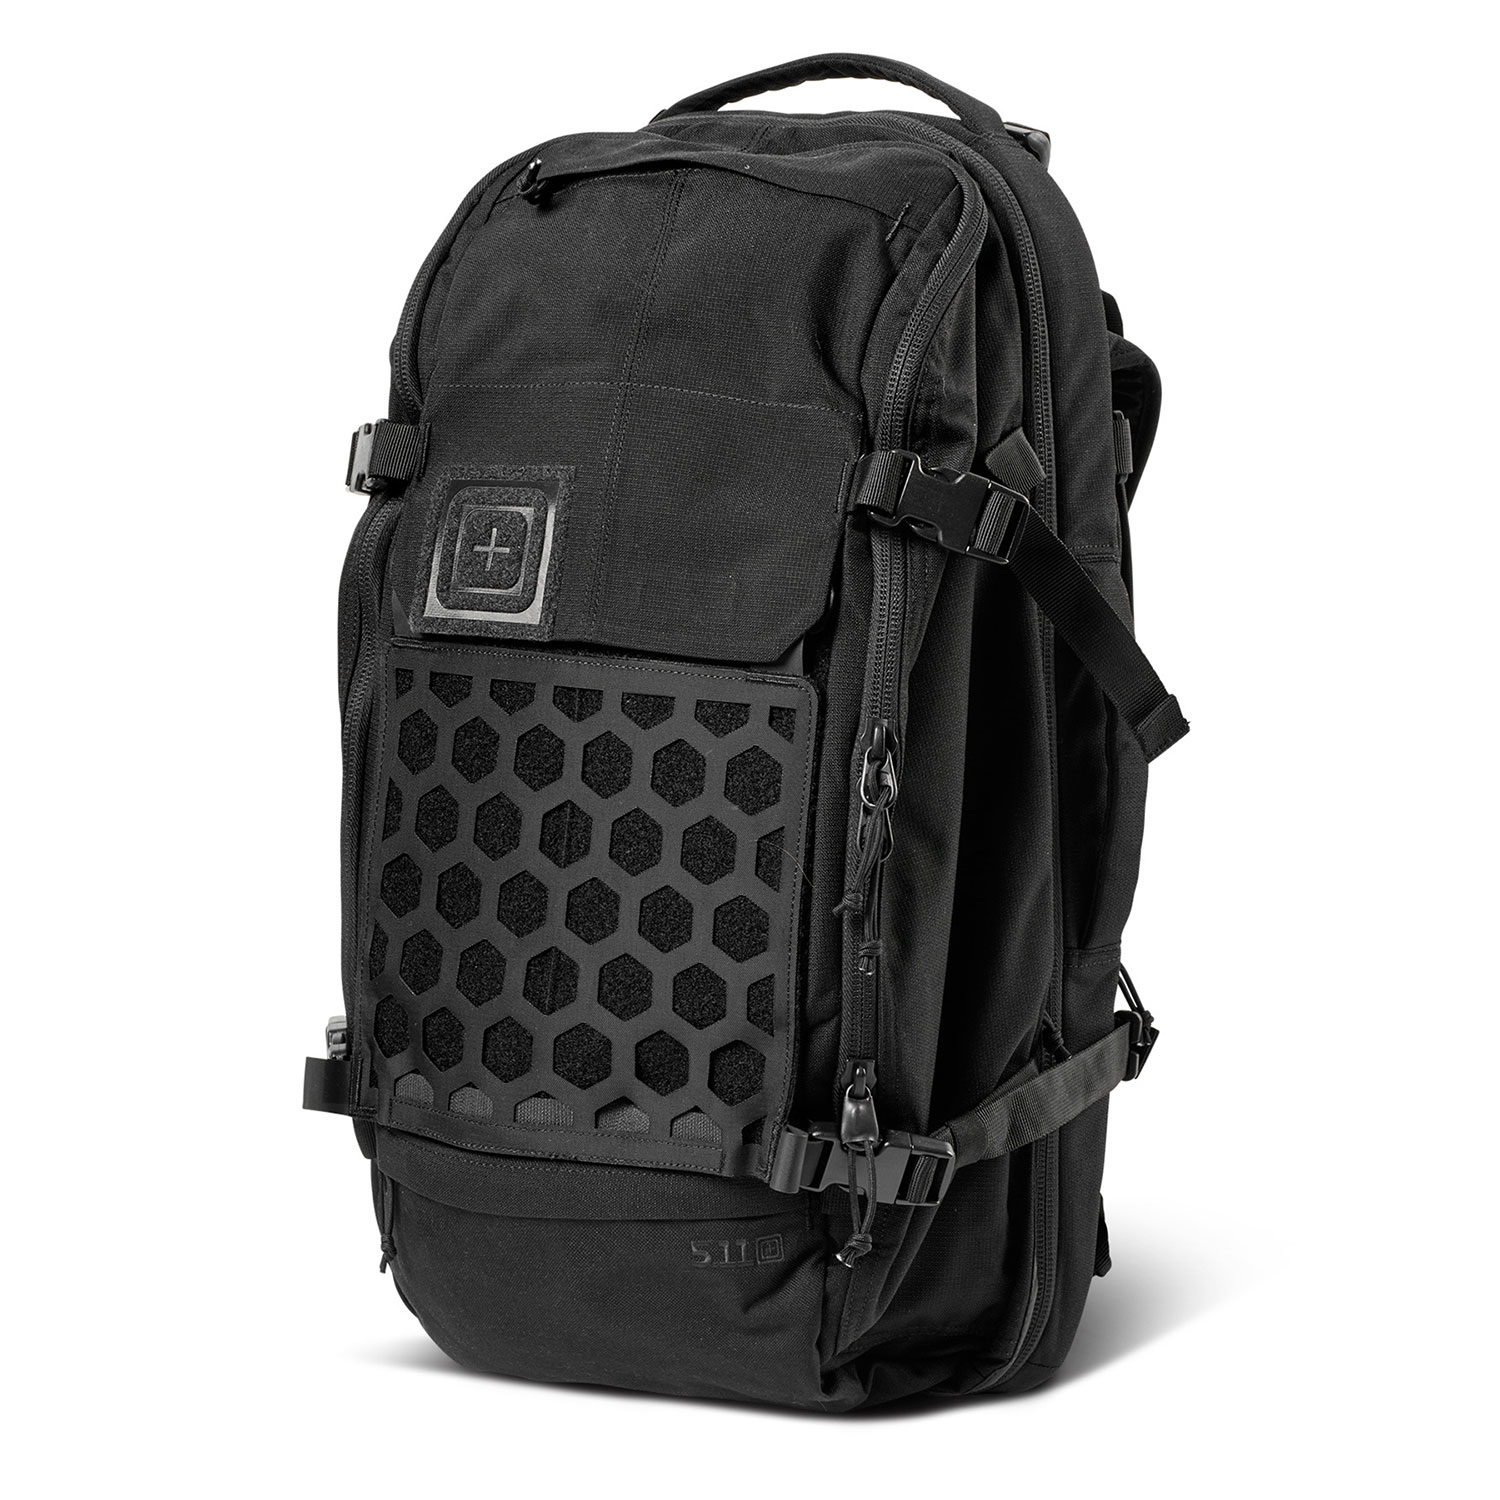 5.11 AMP72 Backpack 40L